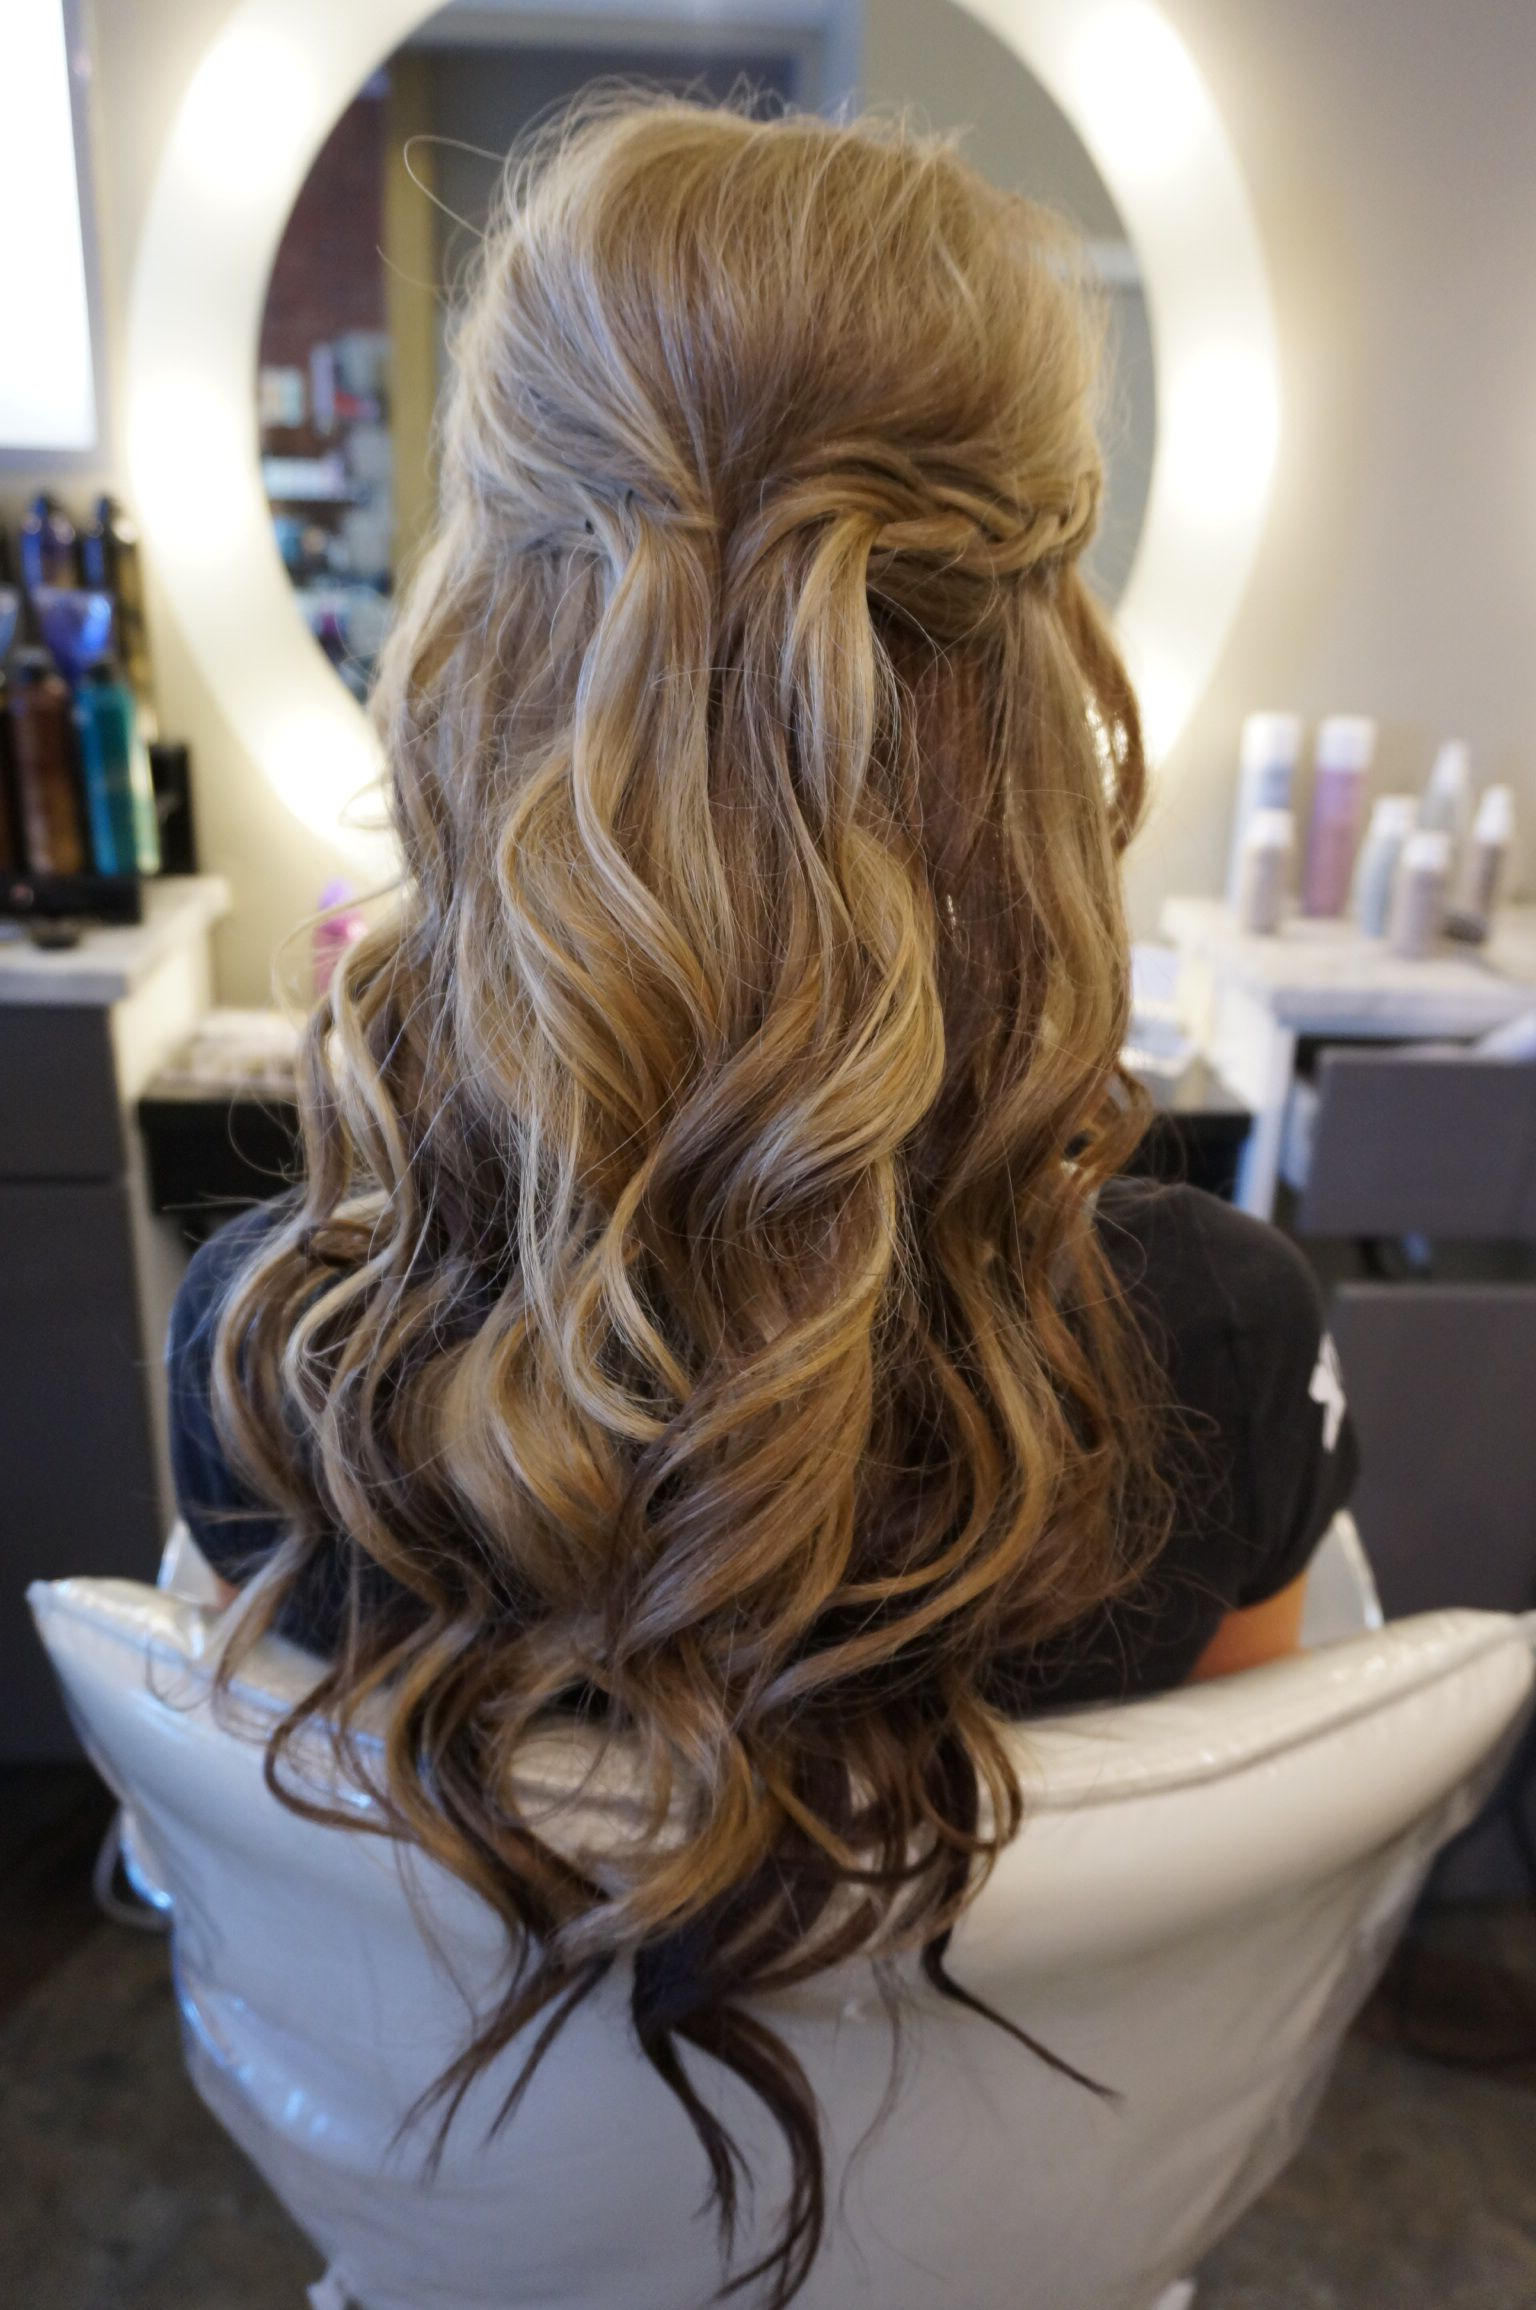 Hairstyles : Wavy Hair For Bridesmaids Superb Long Hair With Loose Throughout Most Recent Long Layered Half Curled Hairstyles (View 9 of 20)